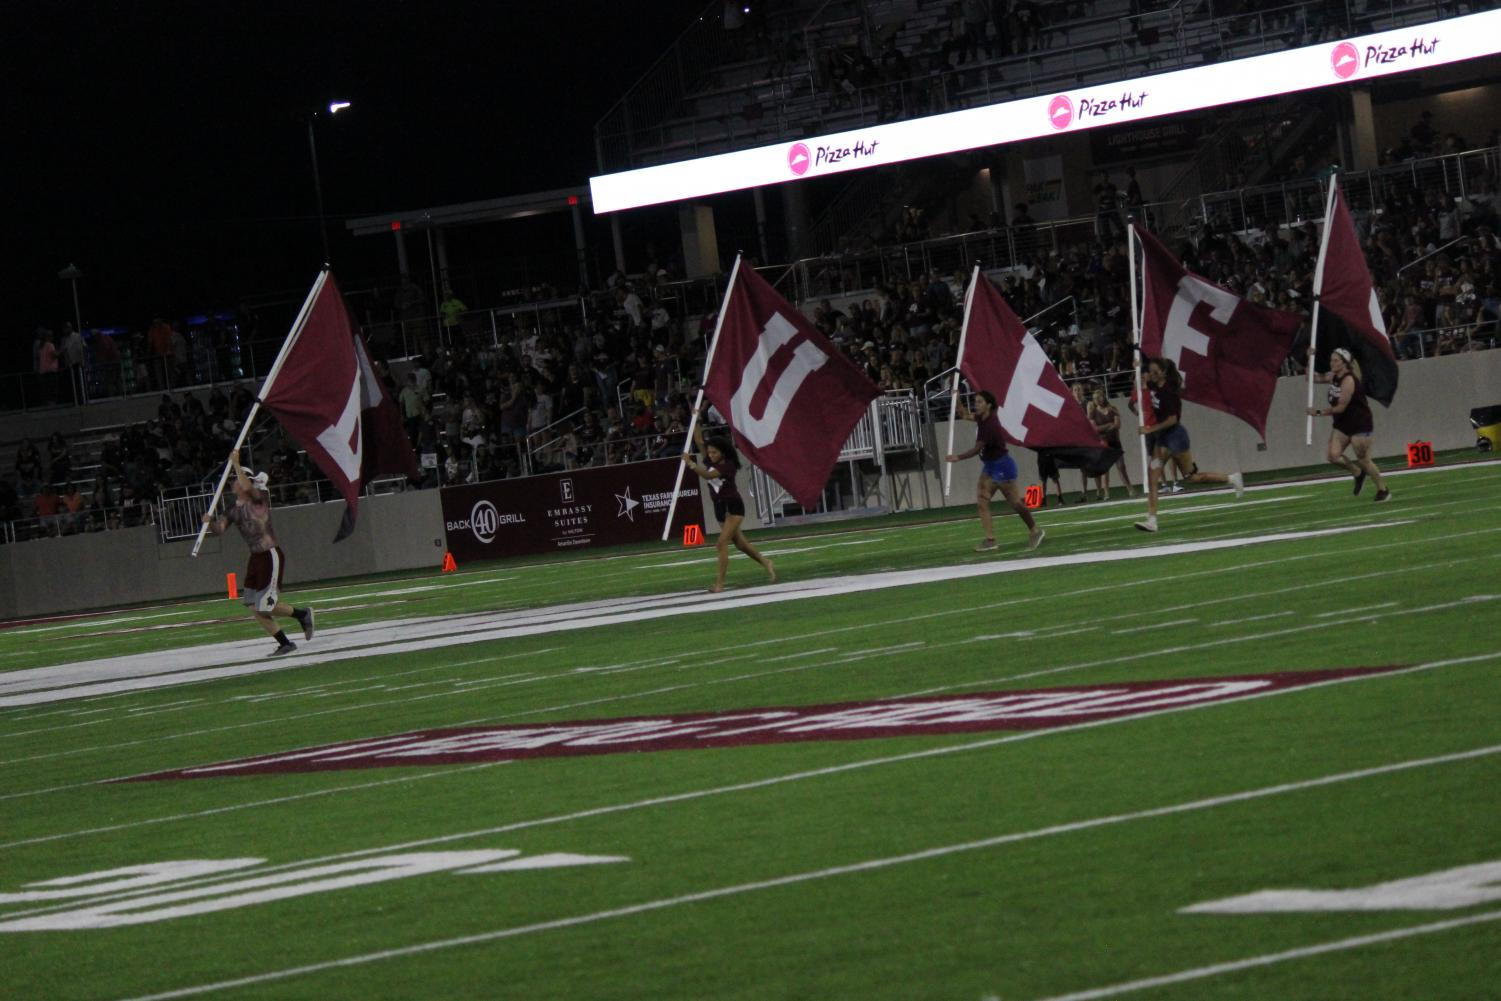 Students+running+with+flags+on+the+field+at+Buff+Stadium+in+celebration+